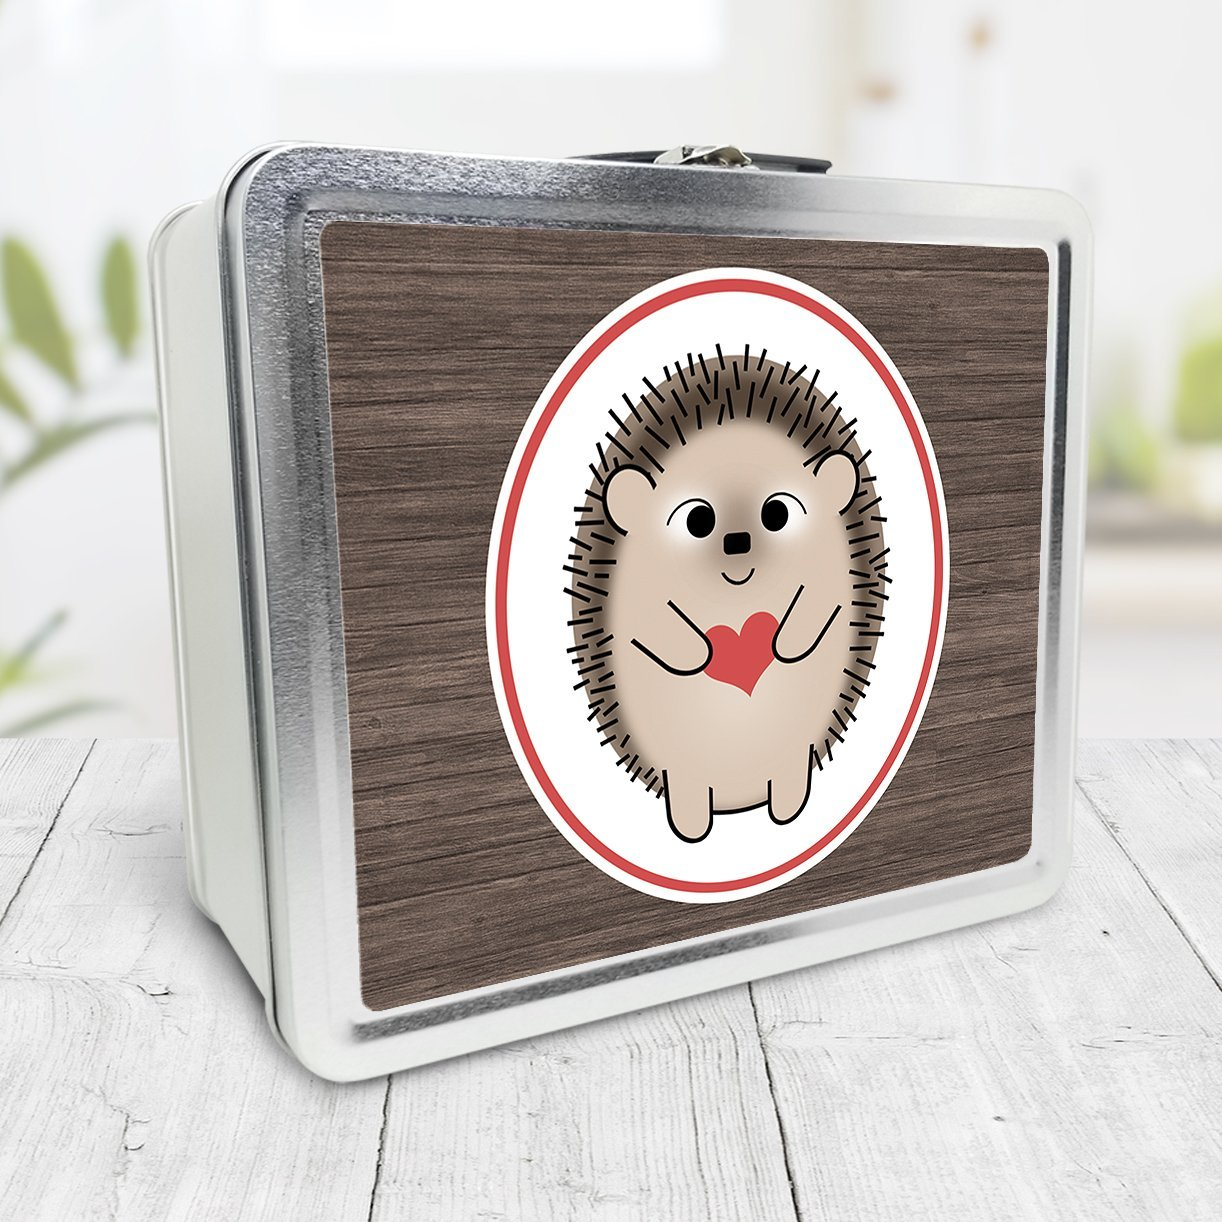 Rustic Wood Red Heart Love Hedgehog Lunch Box at Speckle Rock